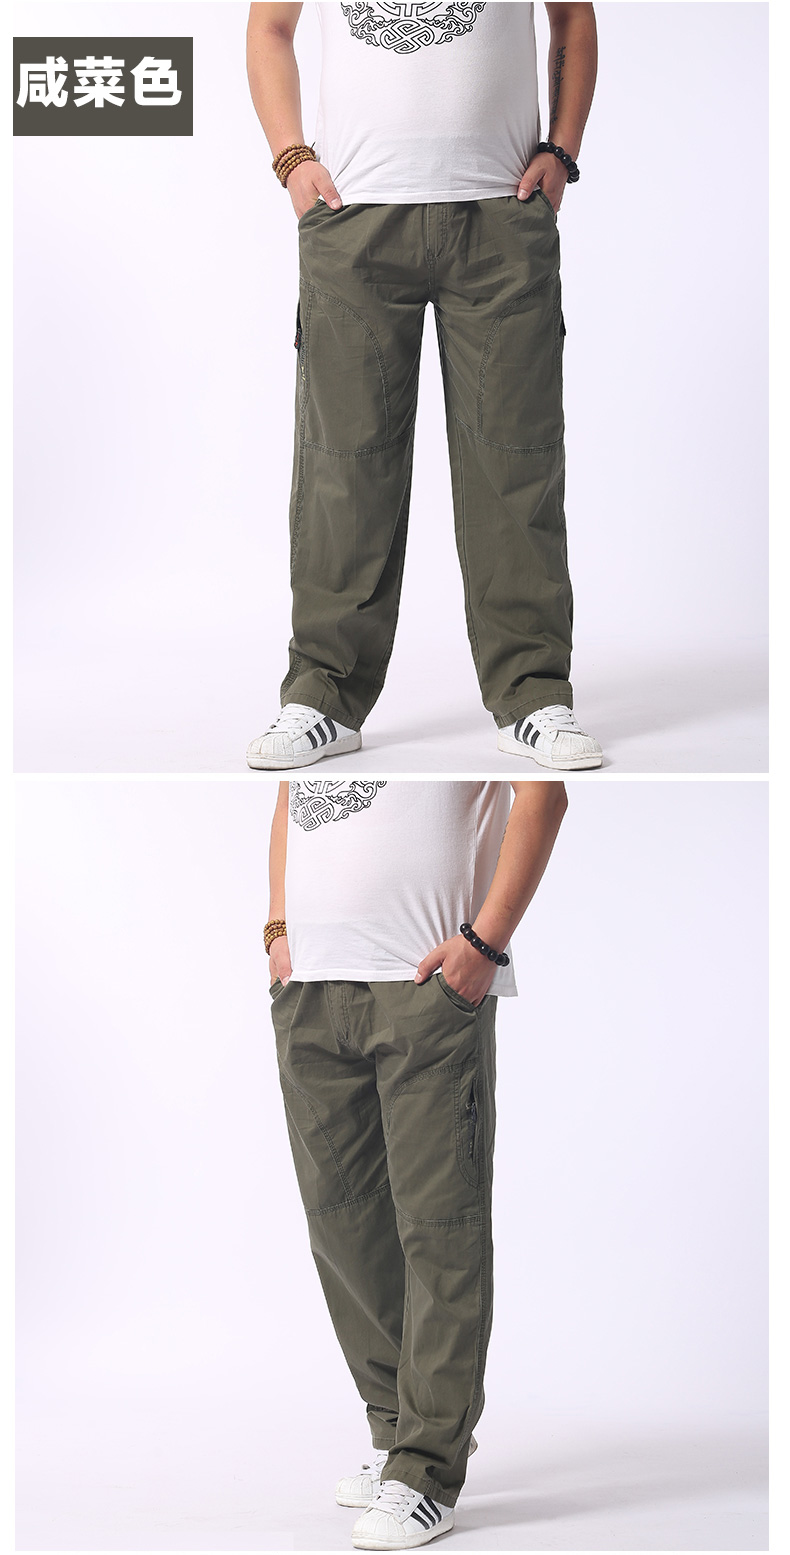 Man Loose Fitting Cargo Pants Yellow Black Gray Khaki  Overall For Mens Cotton Comfort Trousers Elastic Waist Pant American Apparel (7)